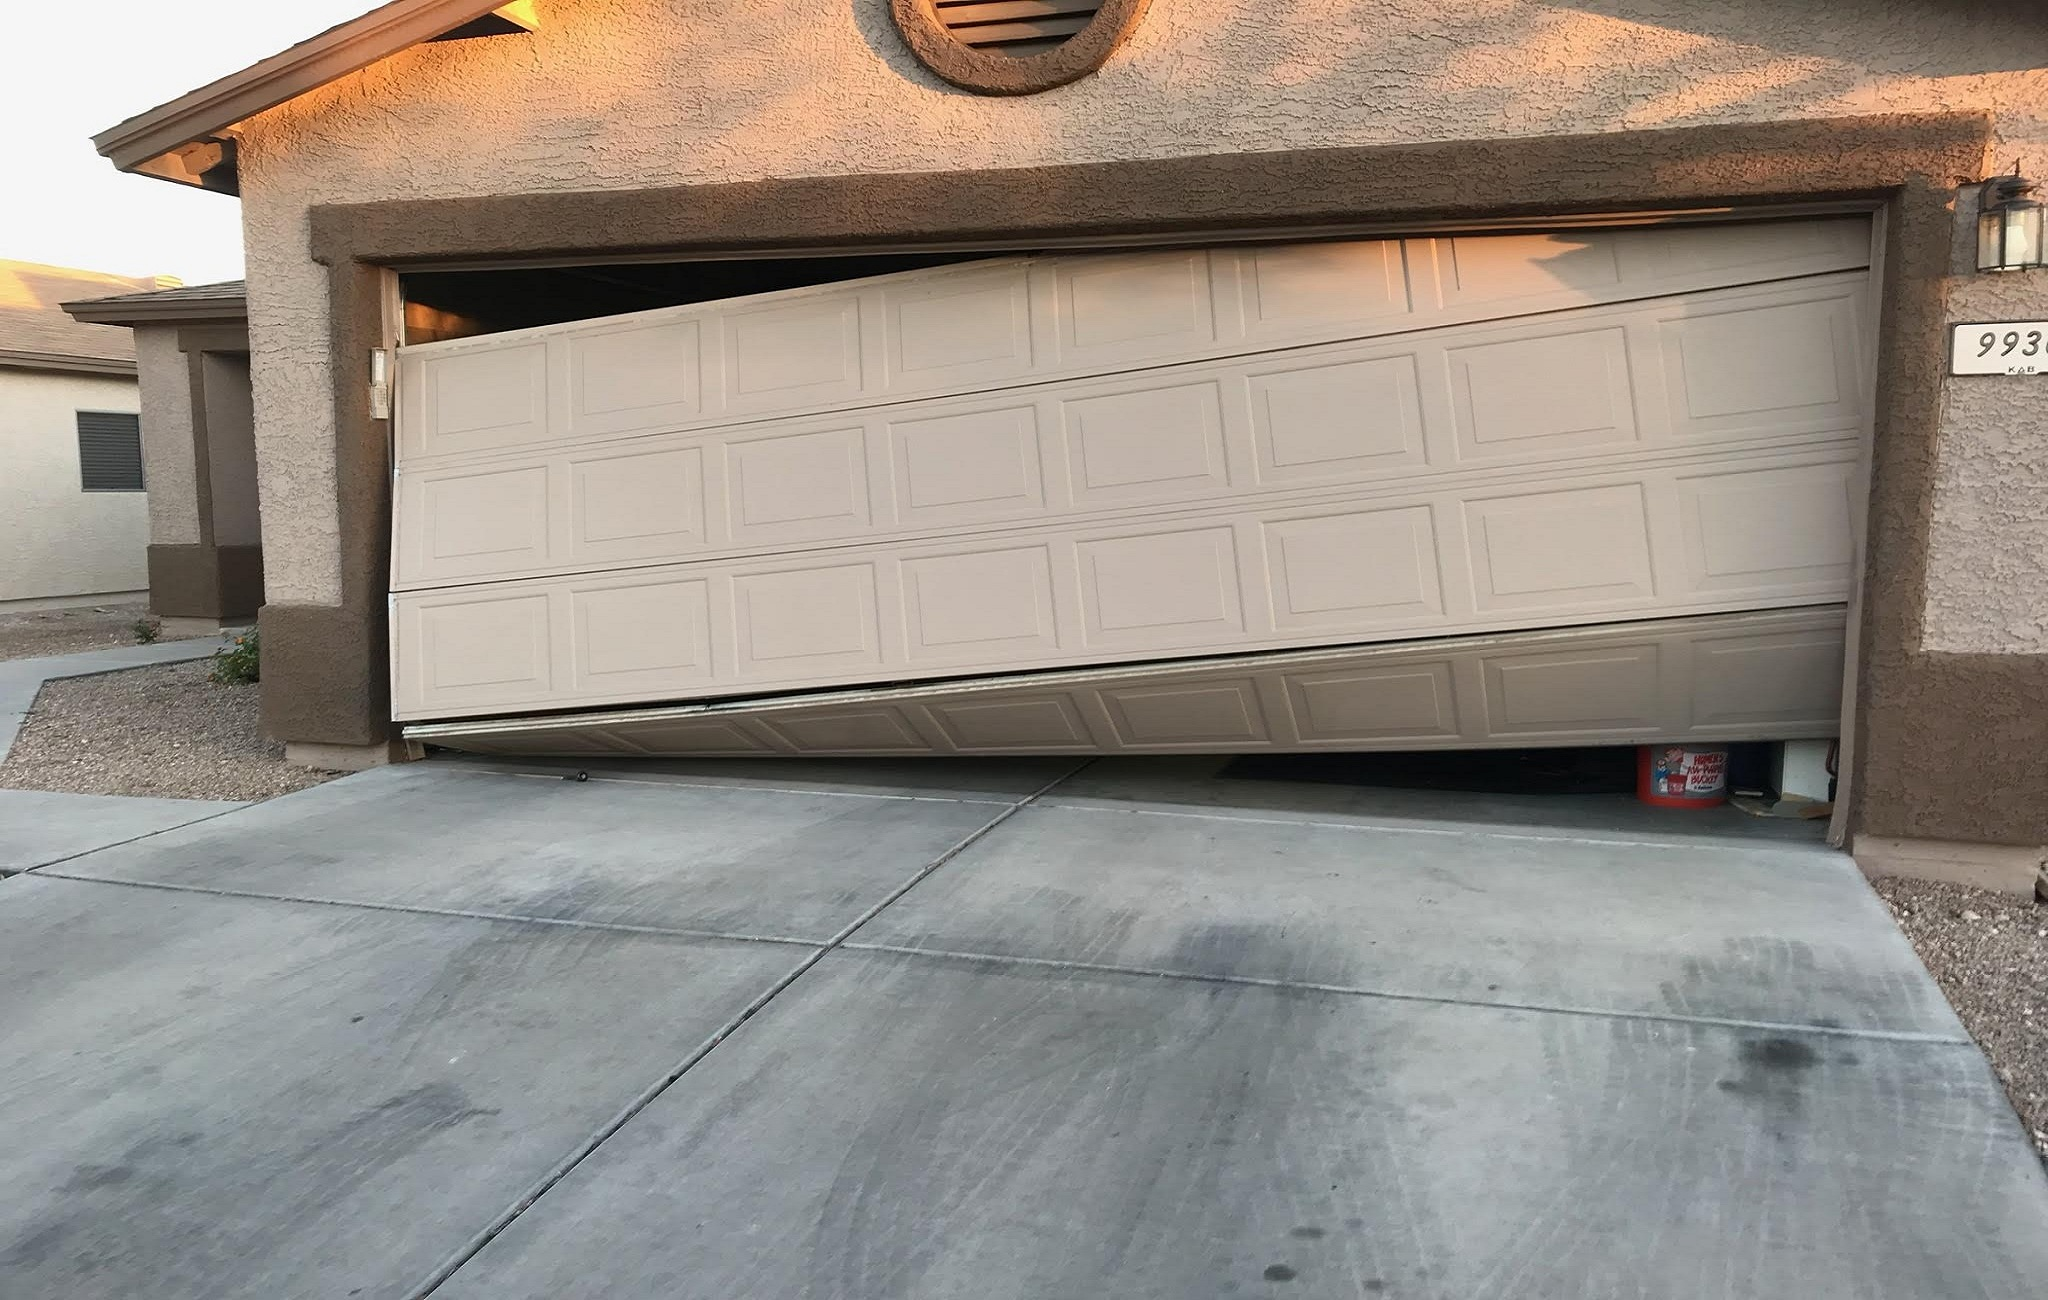 My Garage Door is Damaged, Can it Repair it Myself?